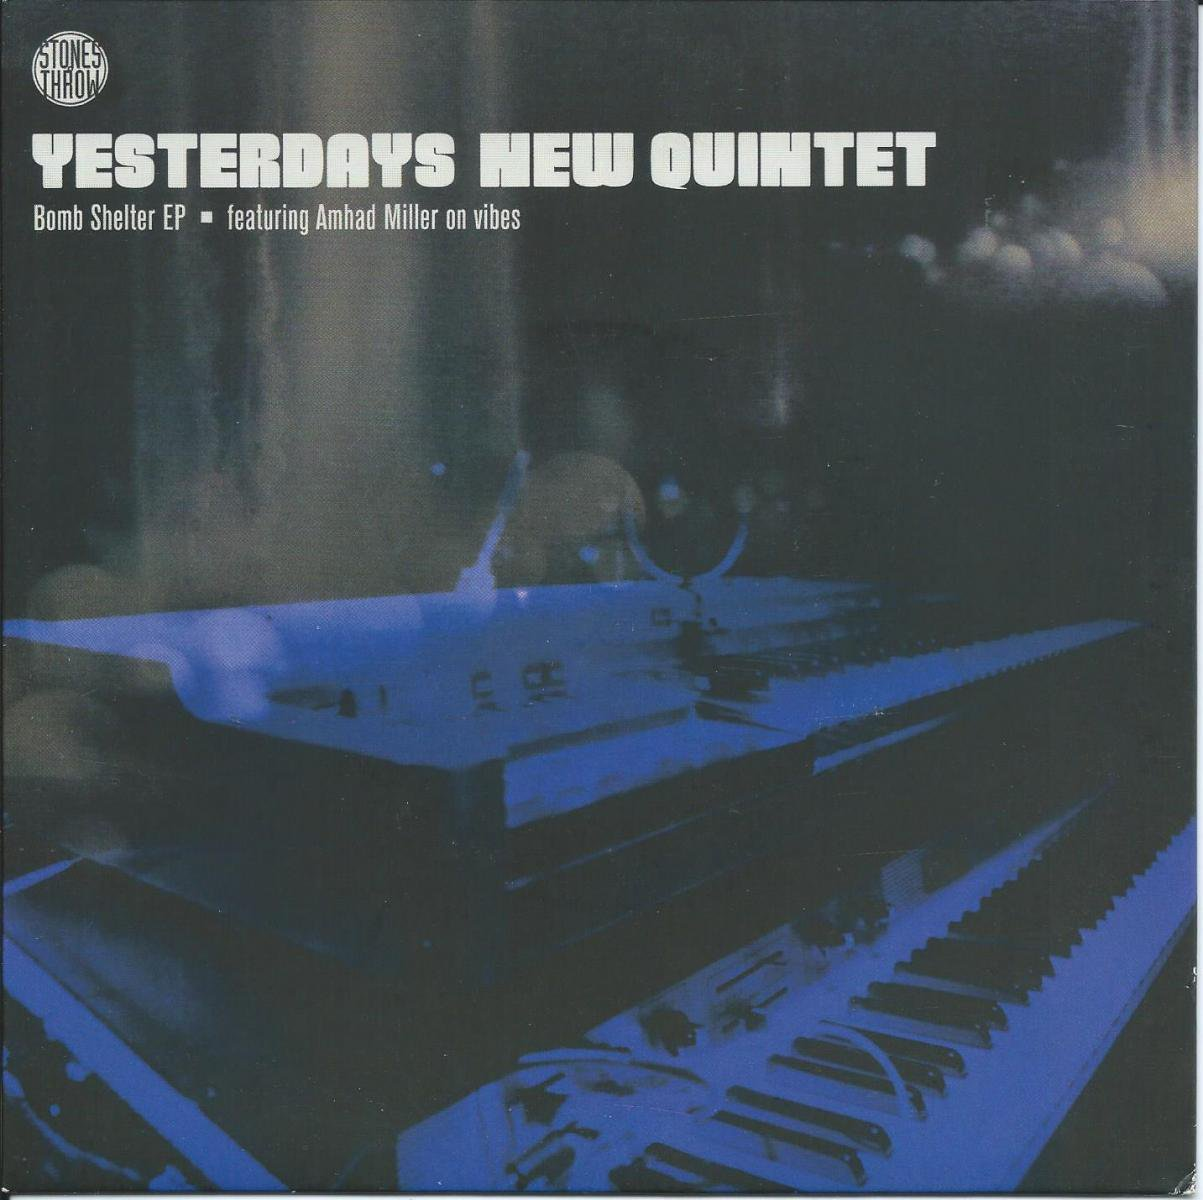 YESTERDAYS NEW QUINTET ‎/ BOMB SHELTER EP (7